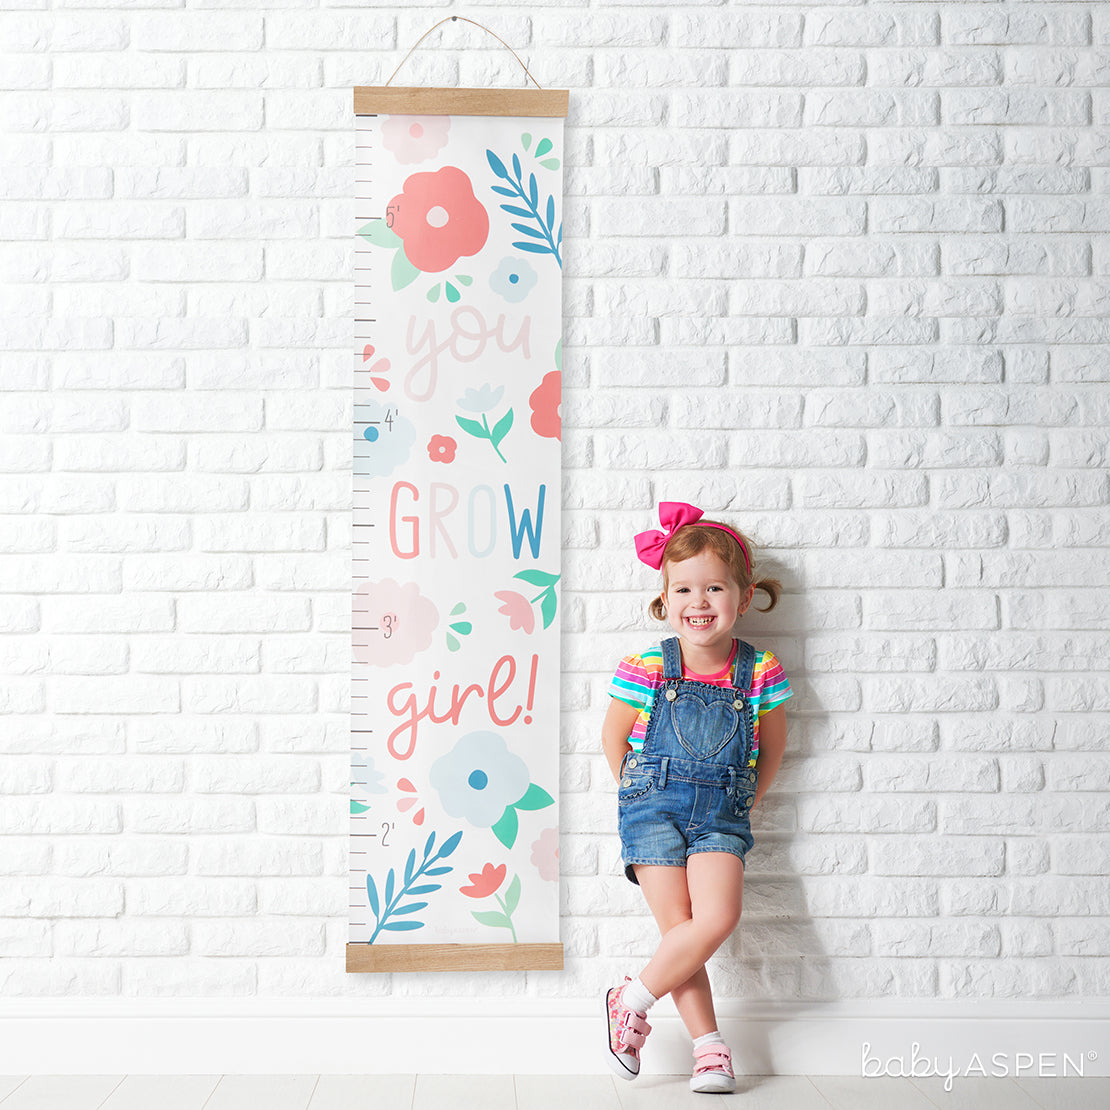 You Grow Girl Growth Chart | Loveable Growth Charts for Your Little One | Baby Aspen